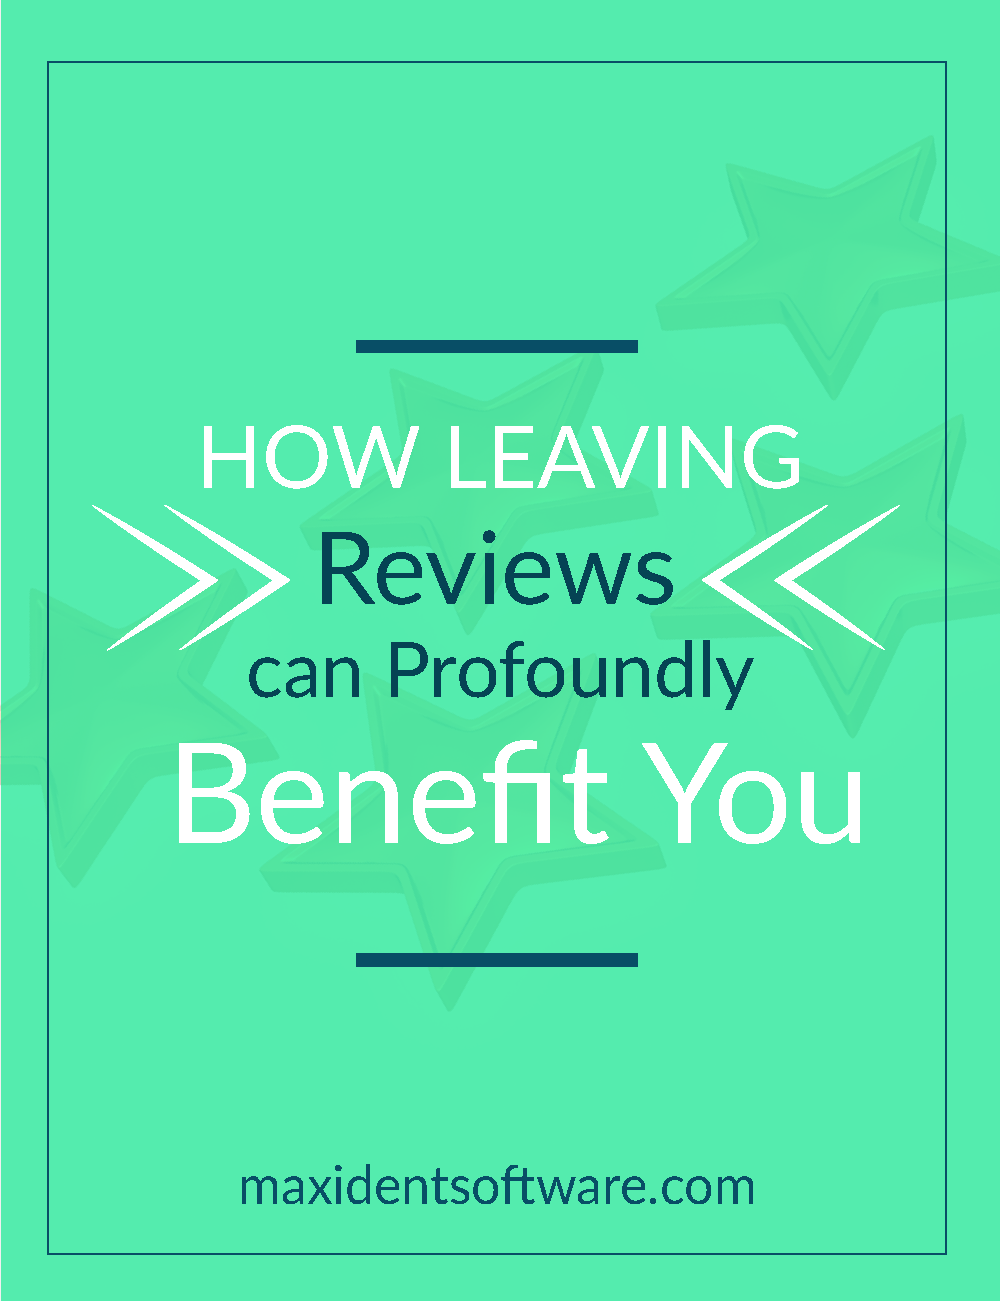 How Leaving Reviews can Profoundly Benefit You